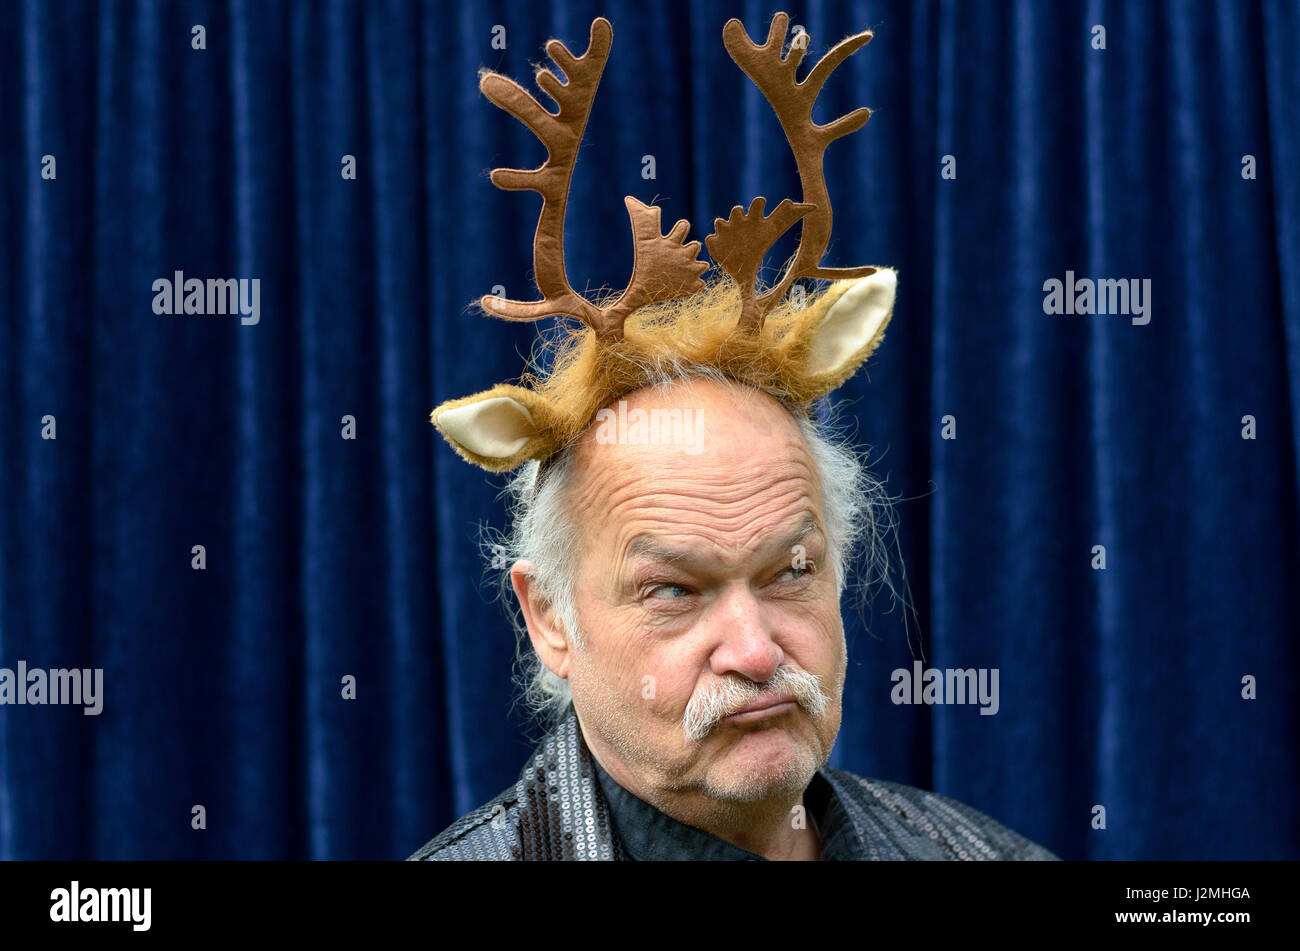 Dubious man wearing gold reindeer antlers before blue background - Stock Image